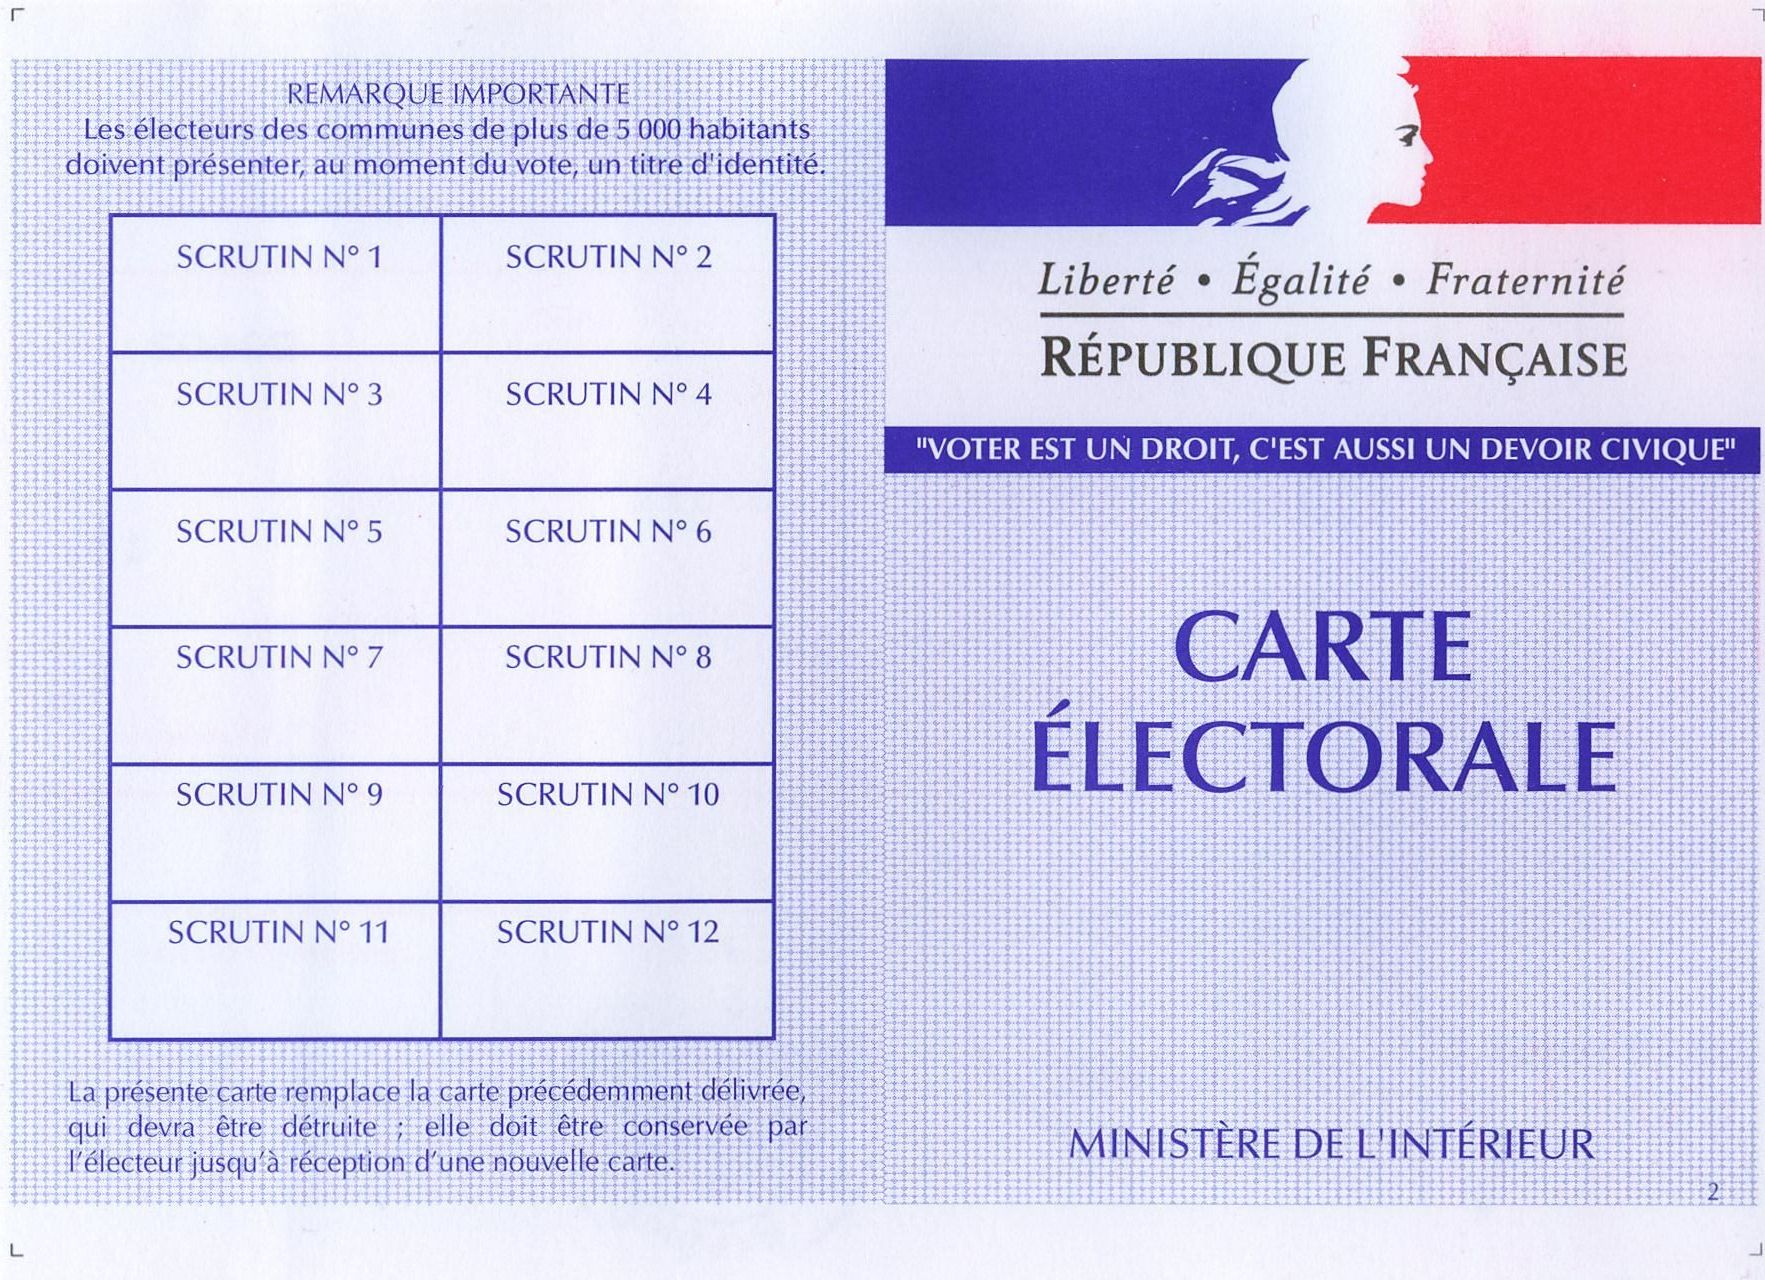 http://upload.wikimedia.org/wikipedia/commons/9/9e/Carte-electorale-francaise-recto.jpg